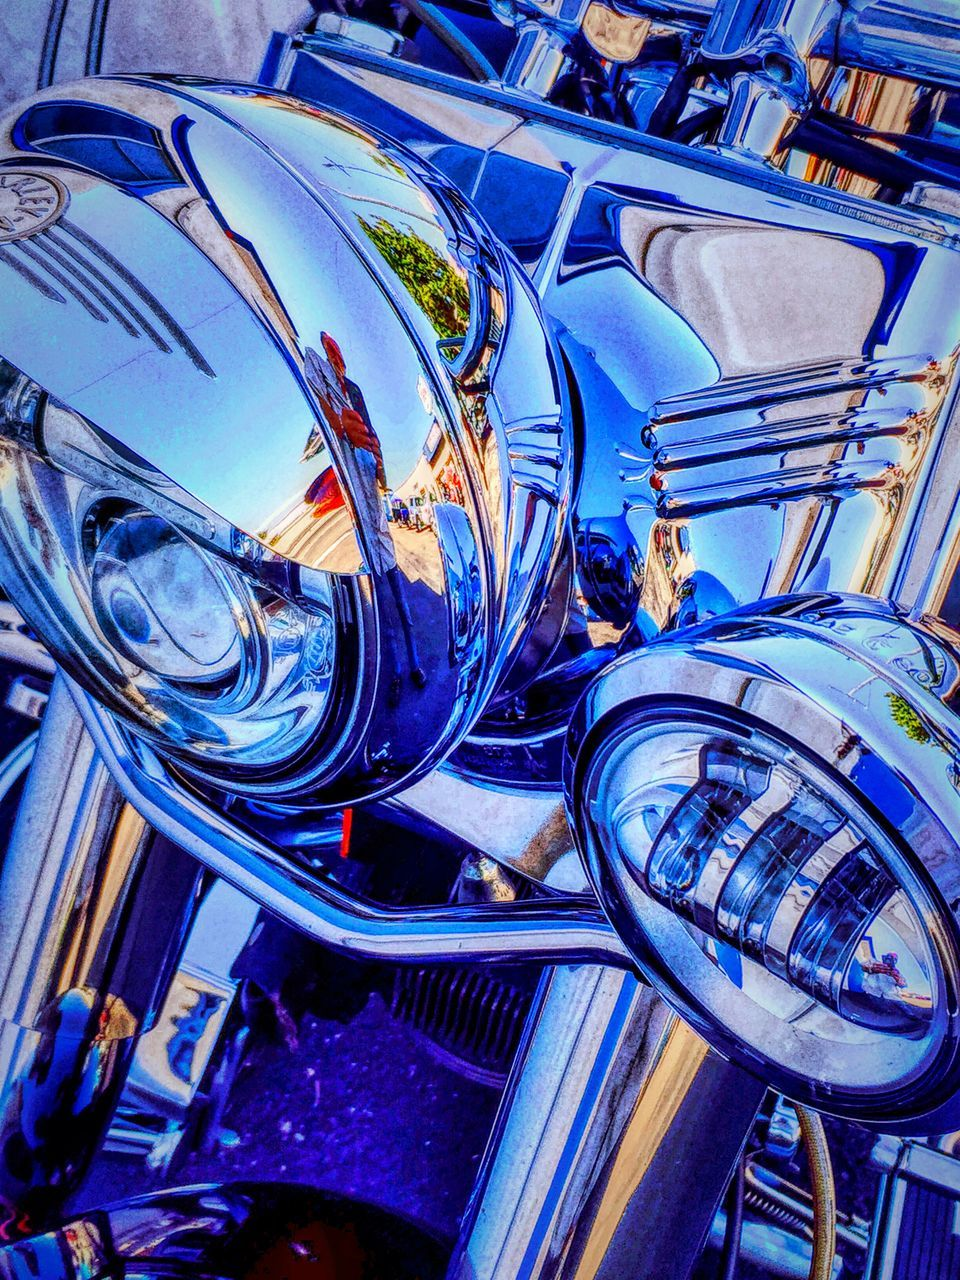 transportation, mode of transport, land vehicle, car, retro styled, blue, old-fashioned, stationary, day, outdoors, close-up, no people, vehicle part